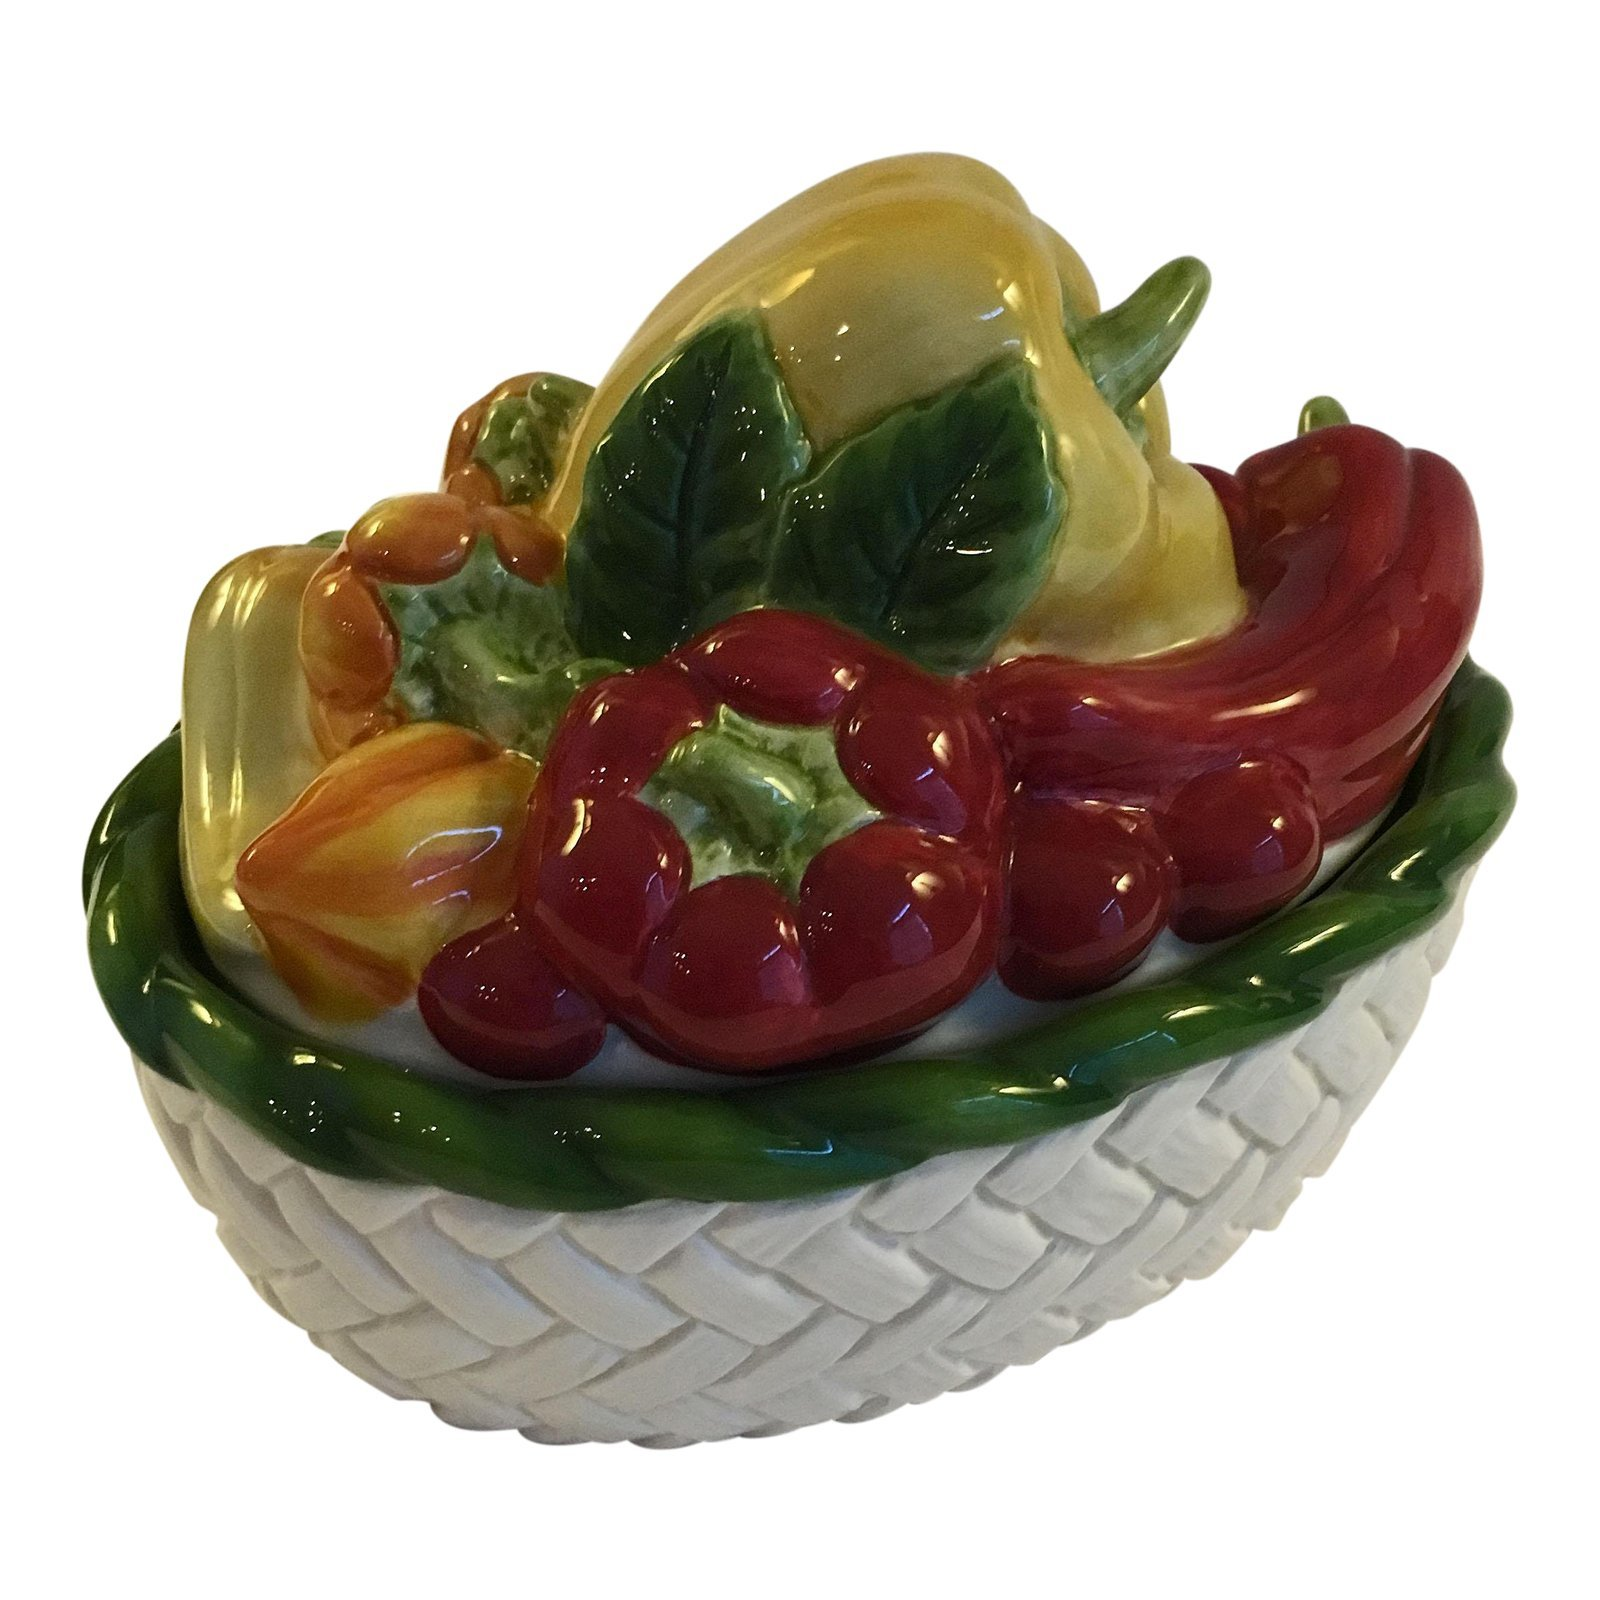 Mid 20th Century Fitz and Floyd Vegetable Motif Covered Dish - $59.00